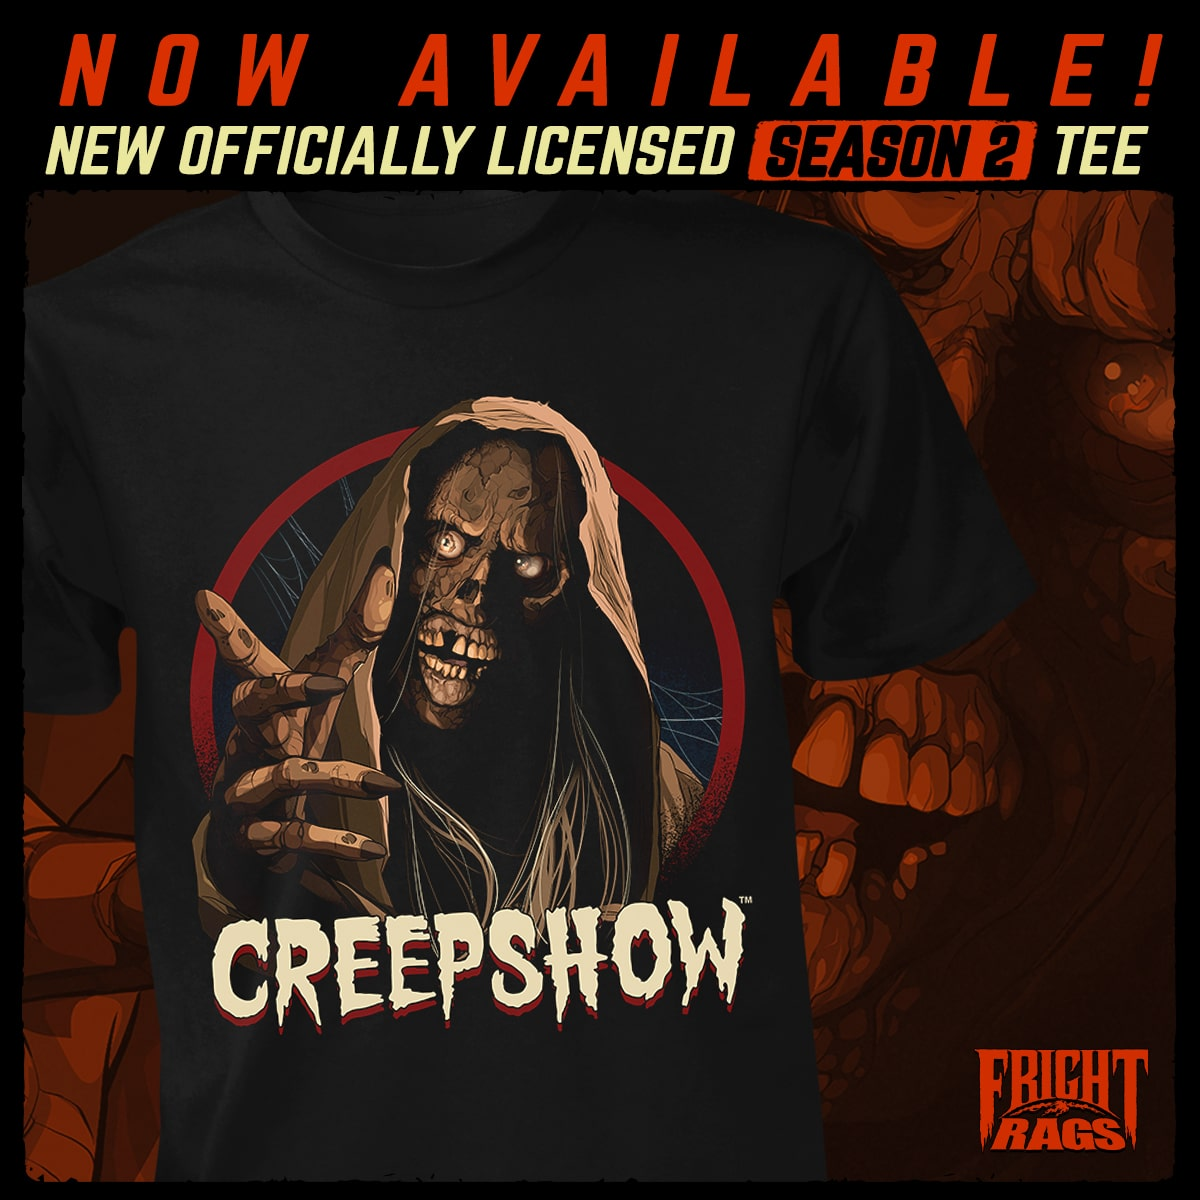 Fright Rights Creepshow Season2 Teeshirt